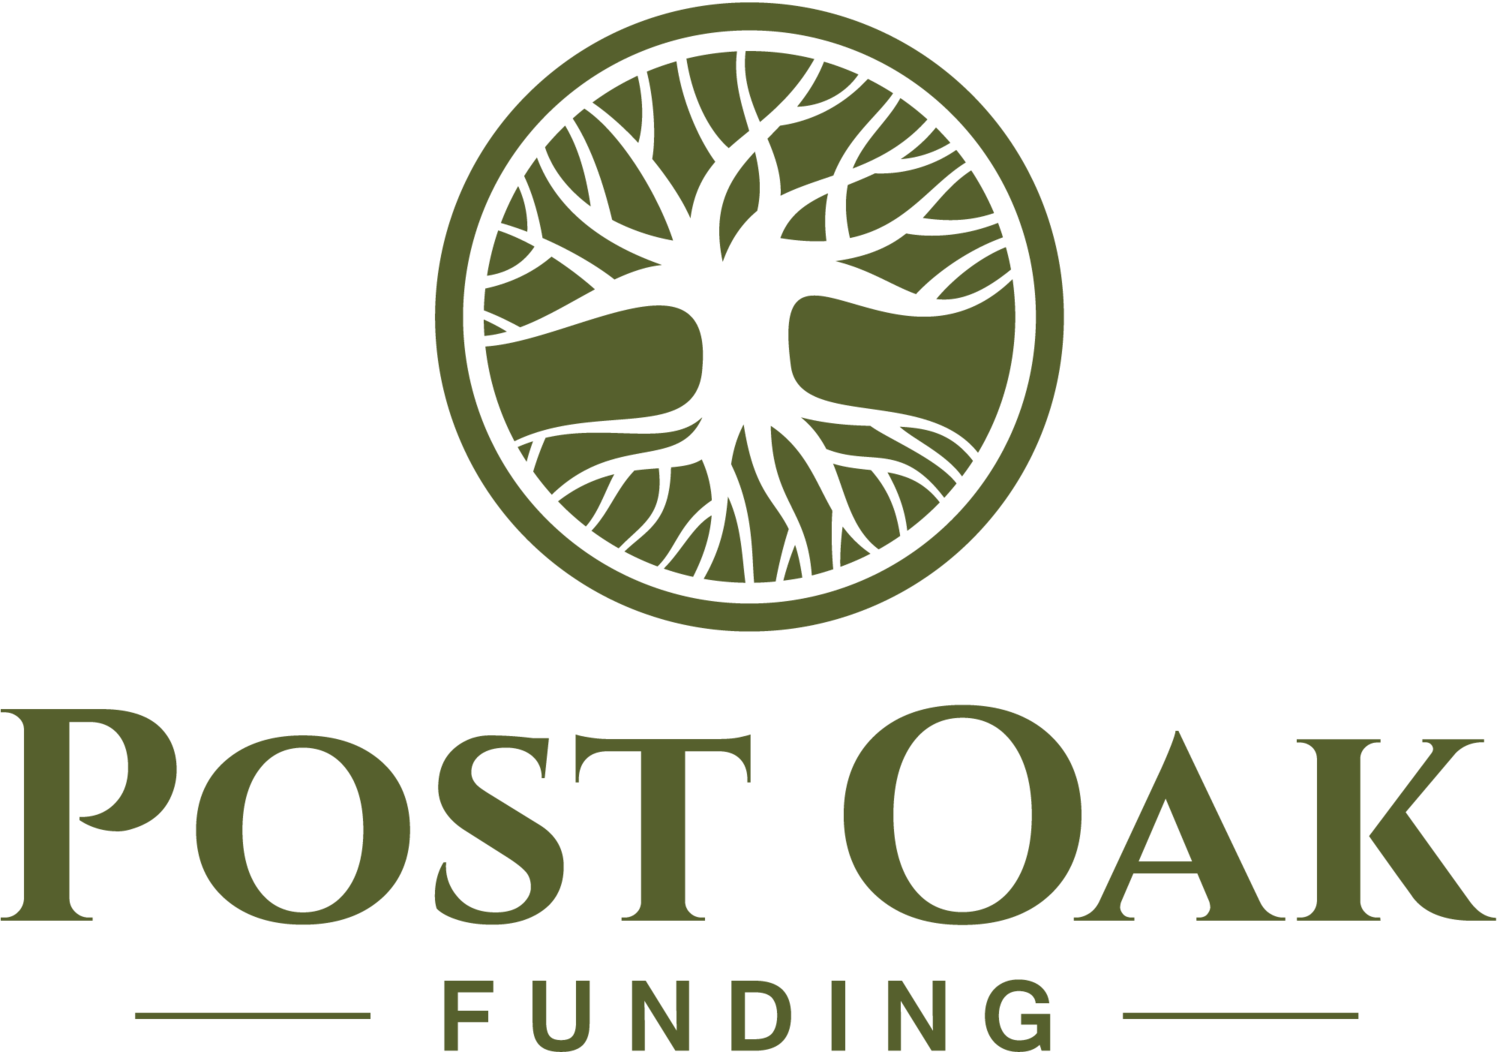 Post Oak Funding